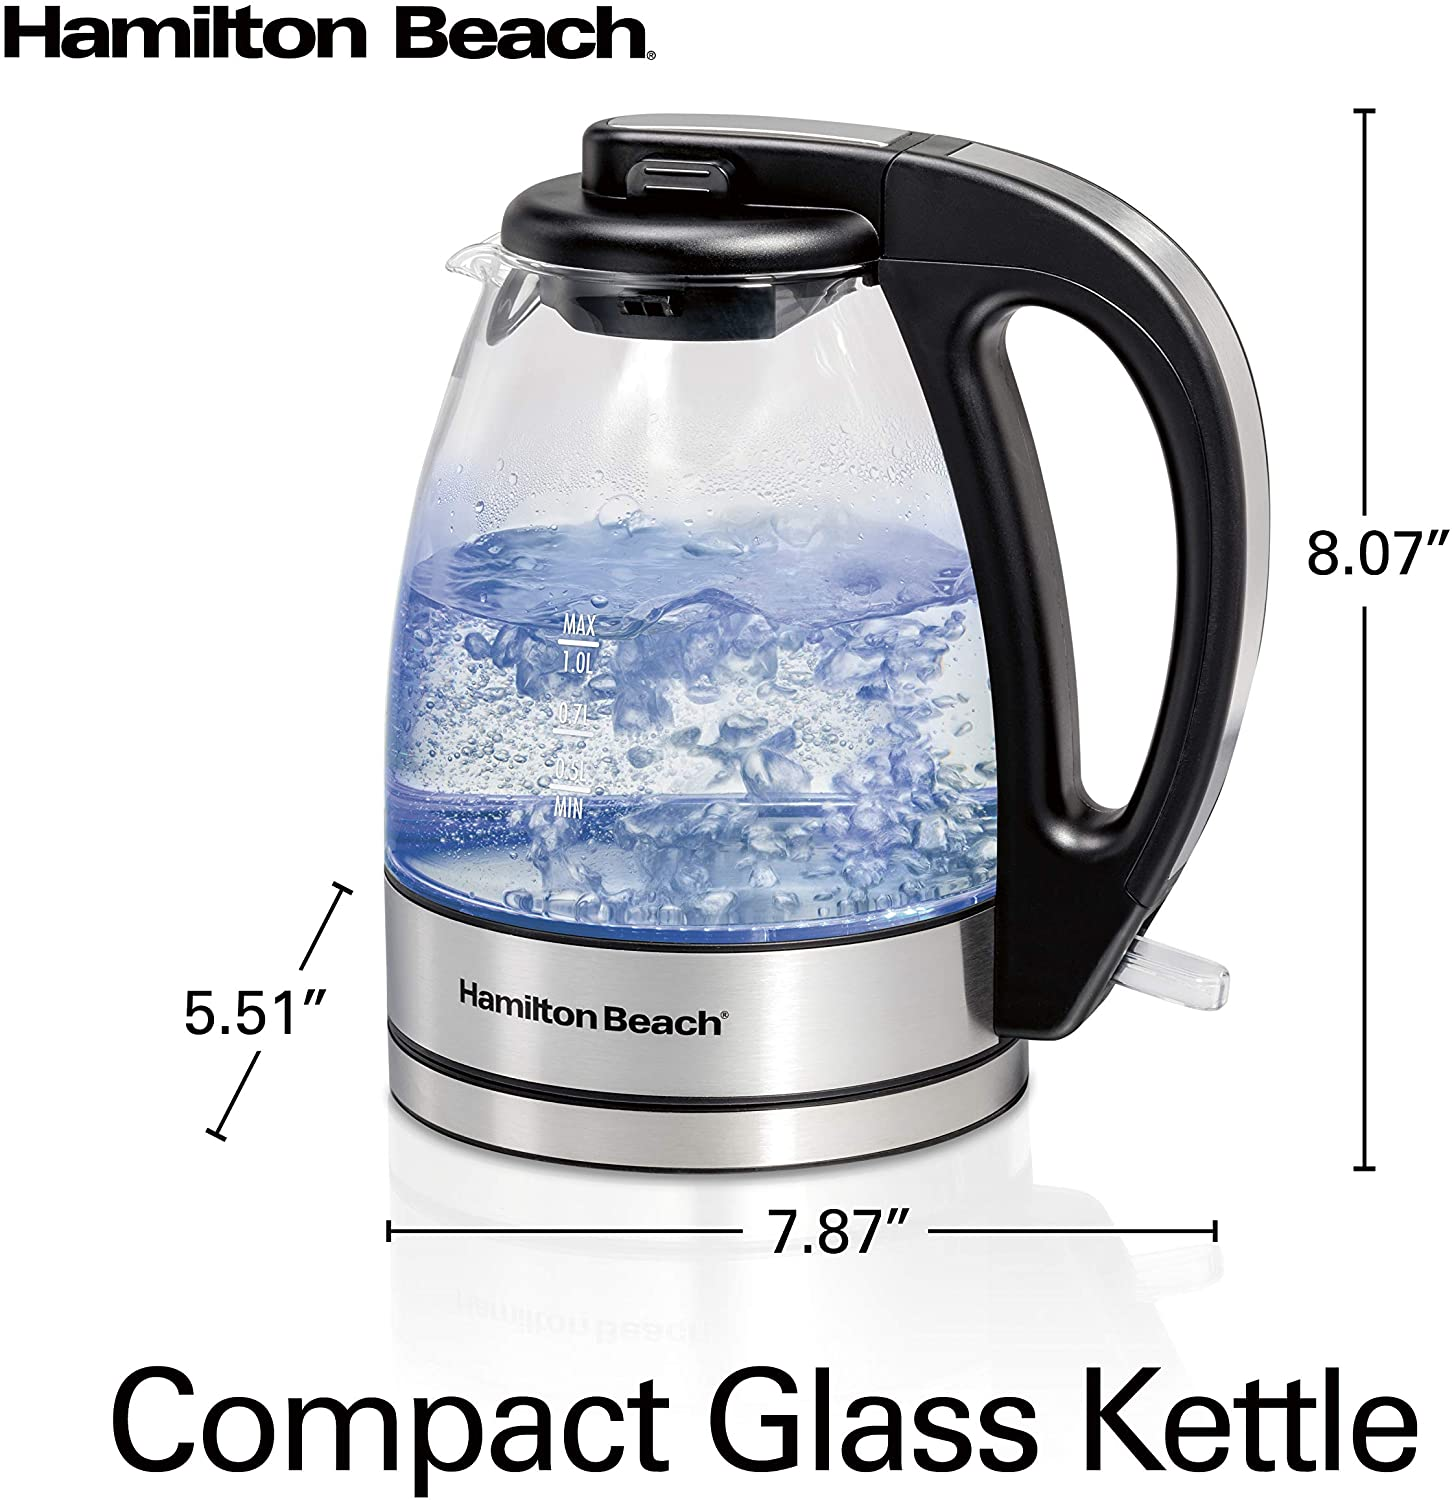 Hamilton Beach Glass Electric Tea Kettle, Water Boiler & Heater, 1 L, Cordless, LED Indicator, Auto-Shutoff & Boil-Dry Protection (40930), Clear